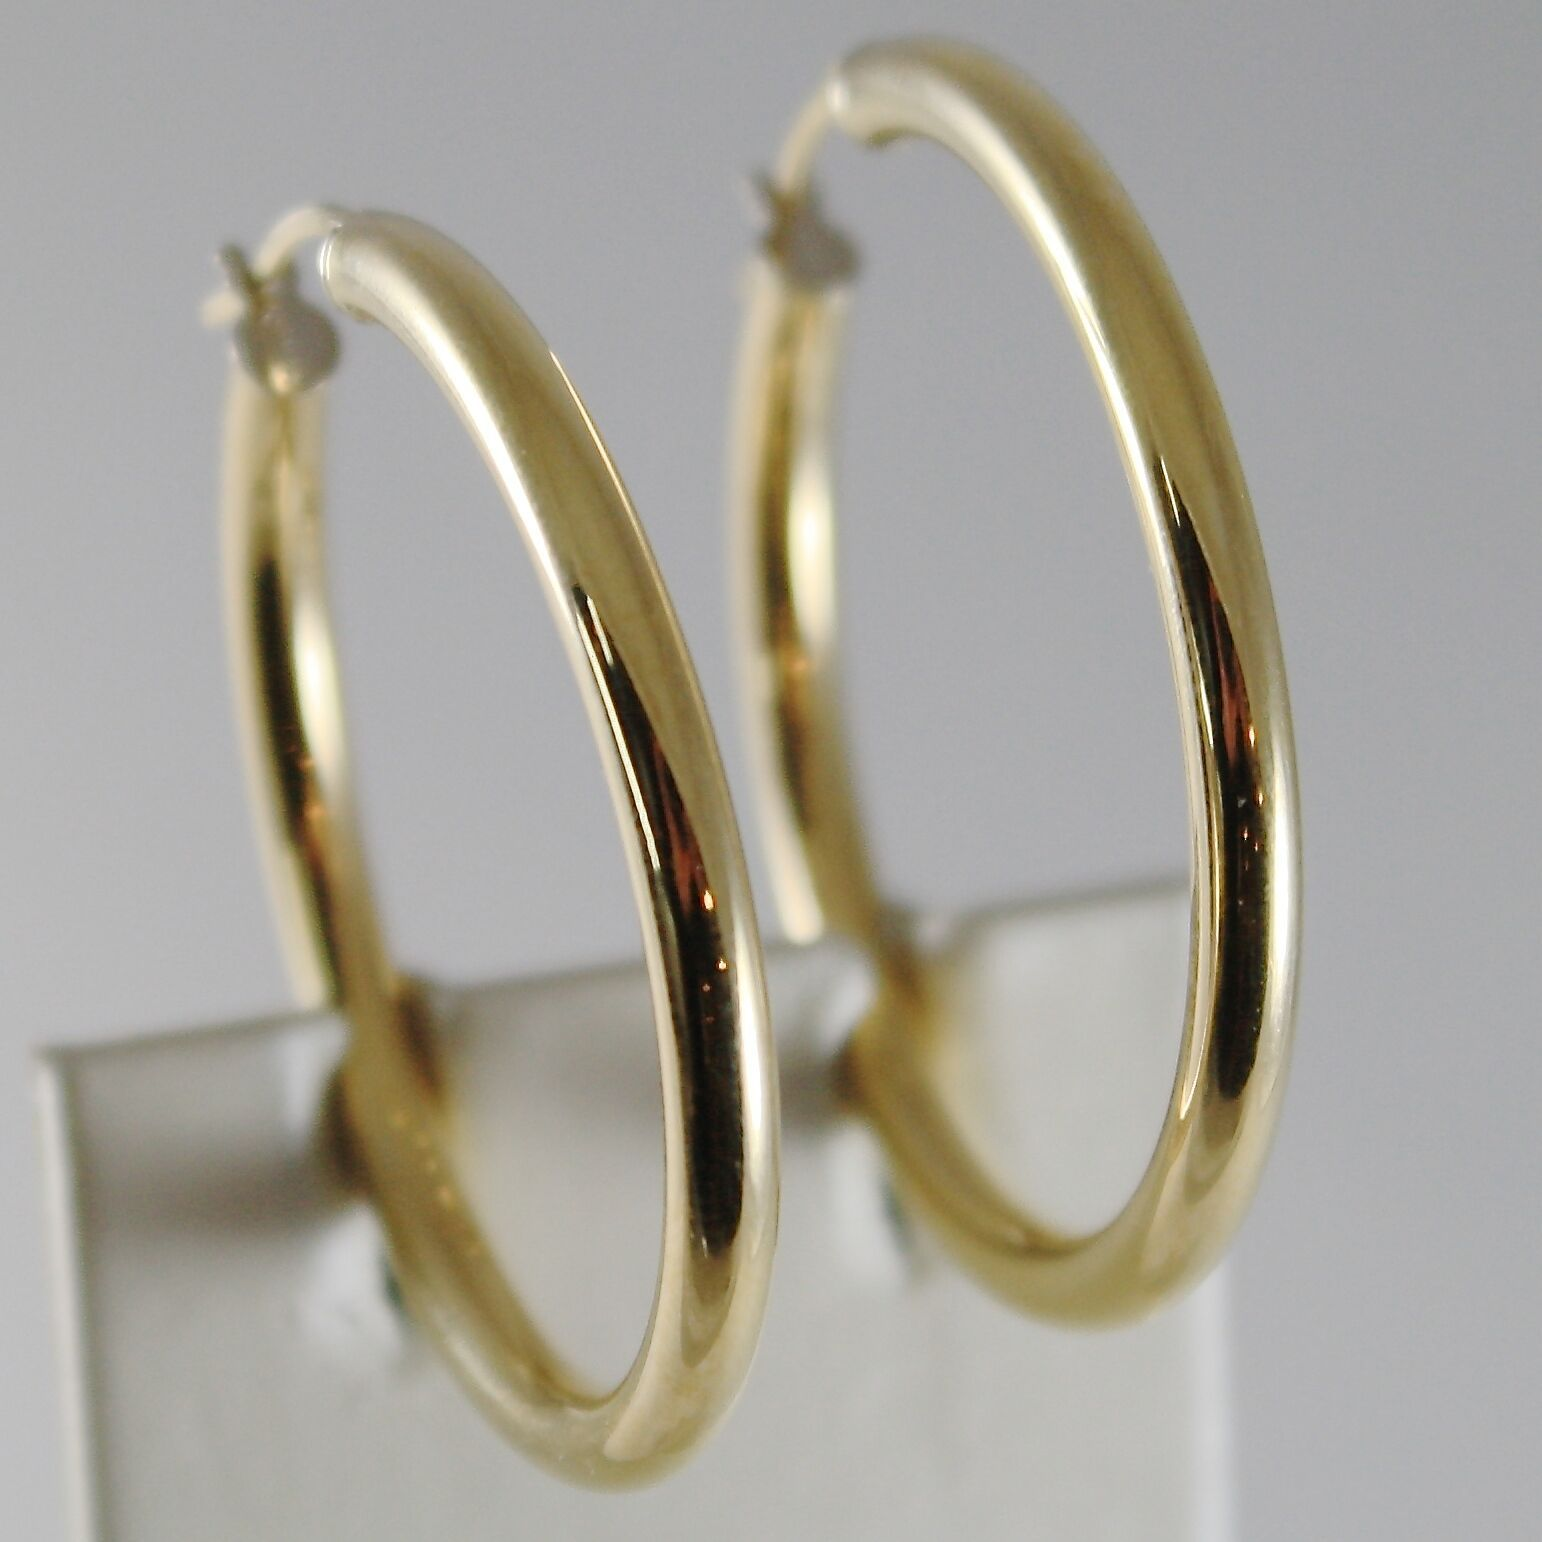 18K YELLOW GOLD EARRINGS BIG CIRCLE HOOP 35 MM 1.38 INCH DIAMETER MADE IN ITALY